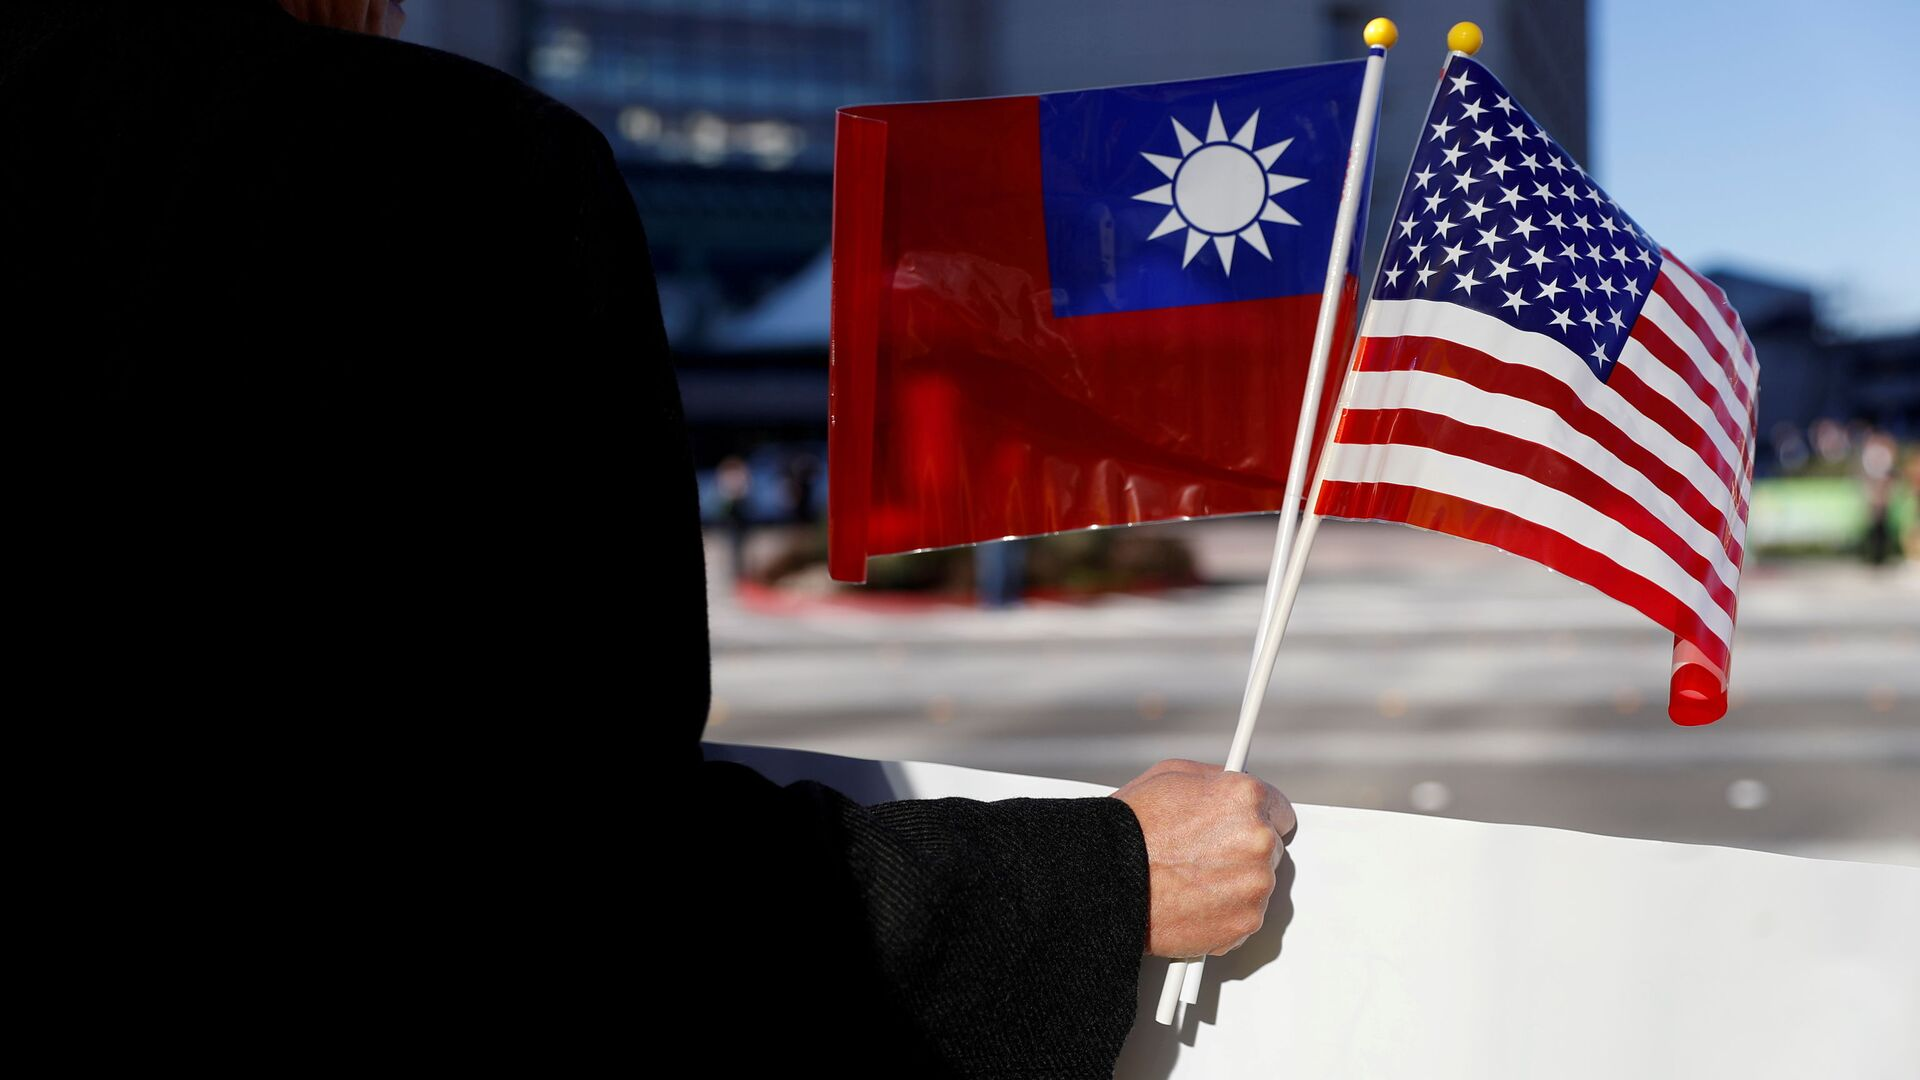 A demonstrator holds flags of Taiwan and the United States in support of Taiwanese President Tsai Ing-wen during an stop-over after her visit to Latin America in Burlingame, California, U.S., January 14, 2017. REUTERS/Stephen Lam/File Photo - Sputnik International, 1920, 05.08.2021